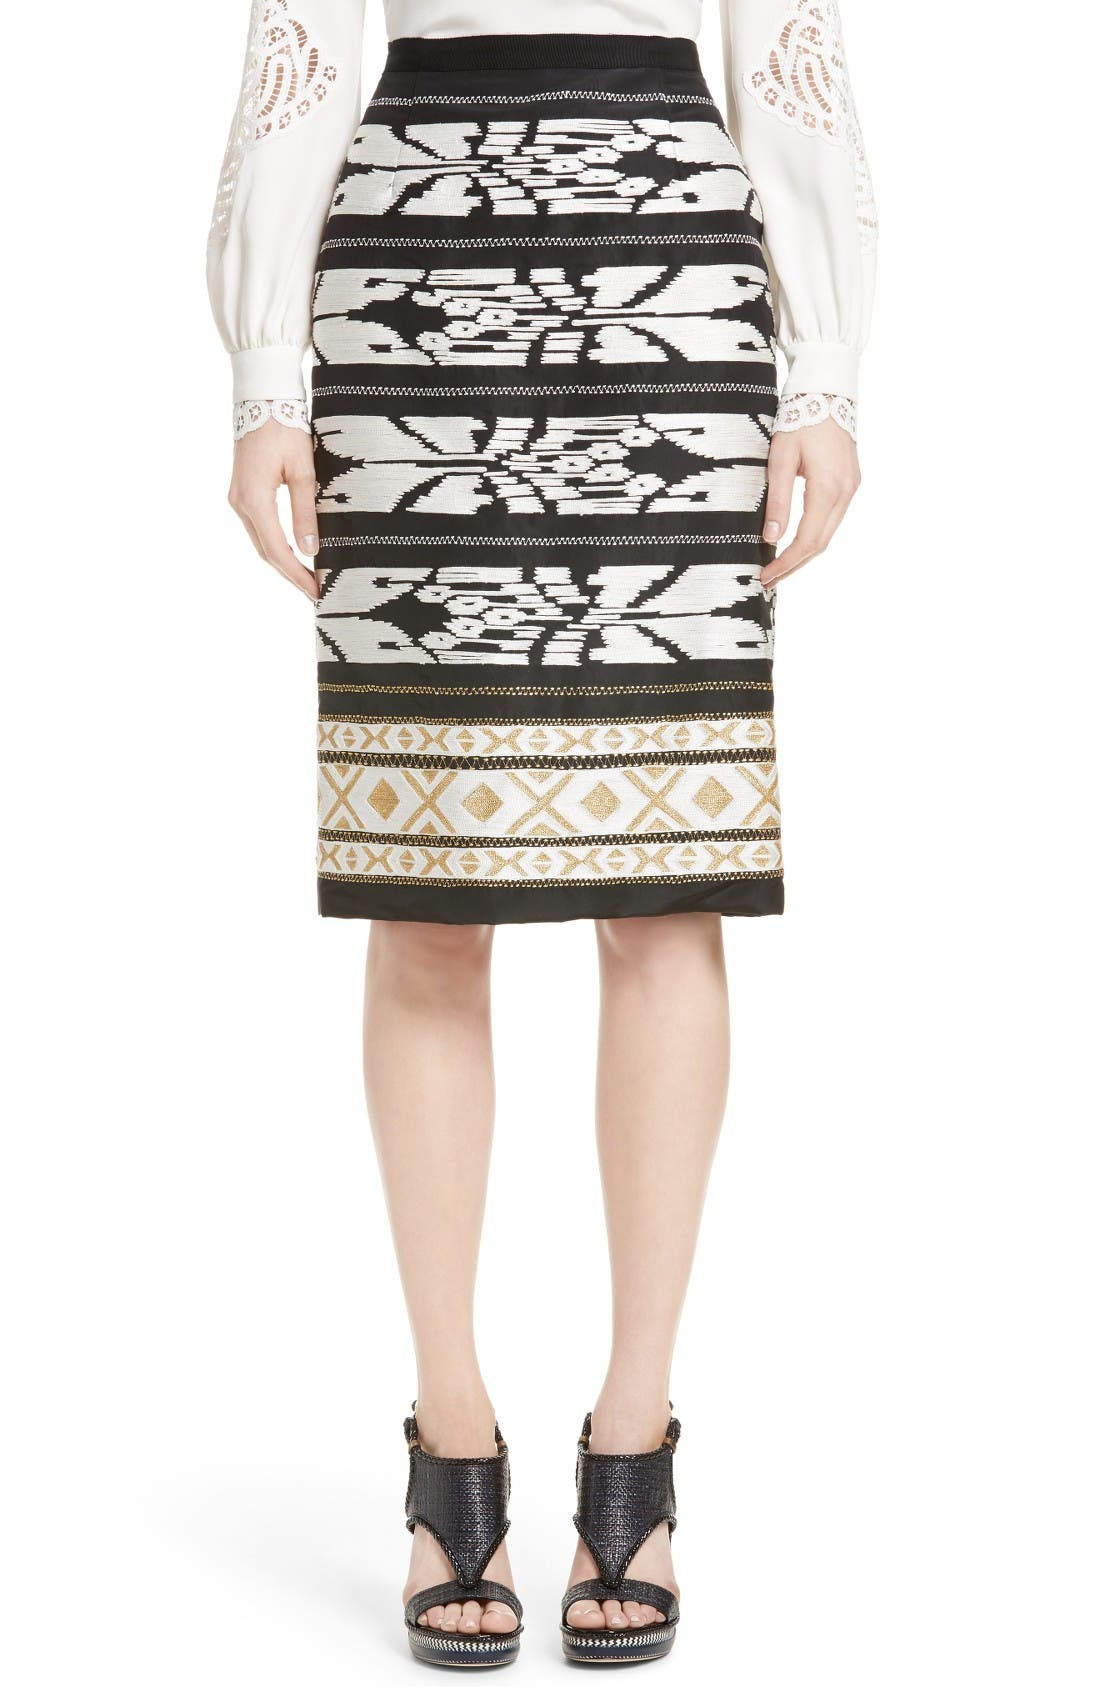 Main Image - Oscar de la Renta Ikat Embroidered Pencil Skirt